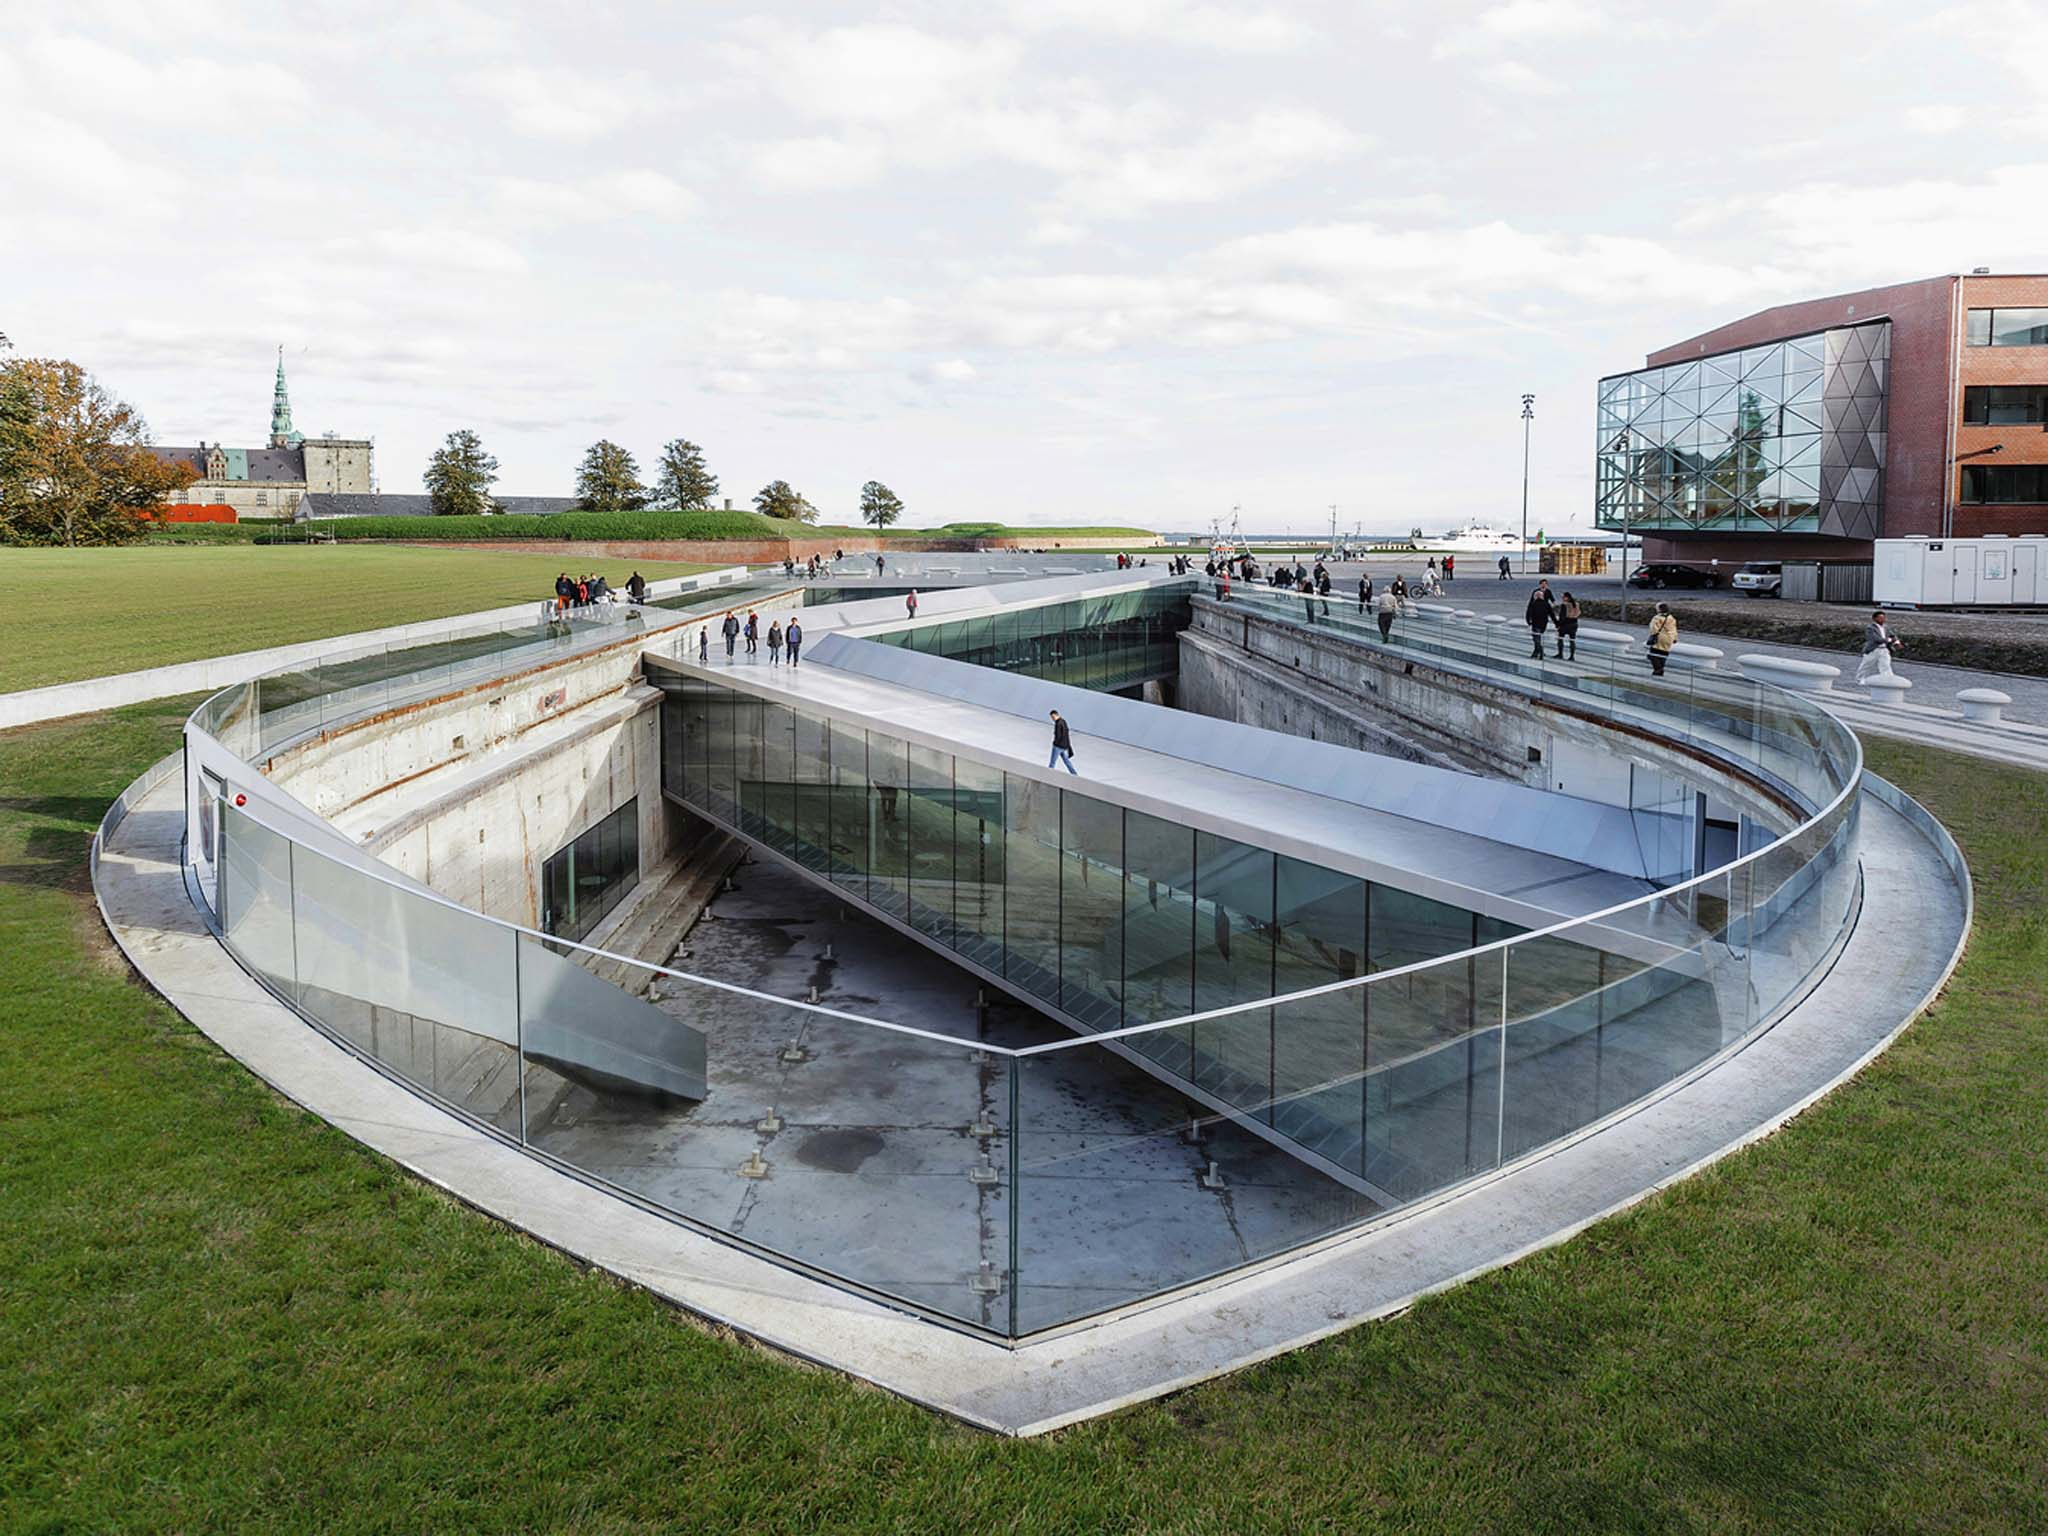 Danish maritime museum big bjarke ingels group helsingor danemark - Francois brugel architecte ...